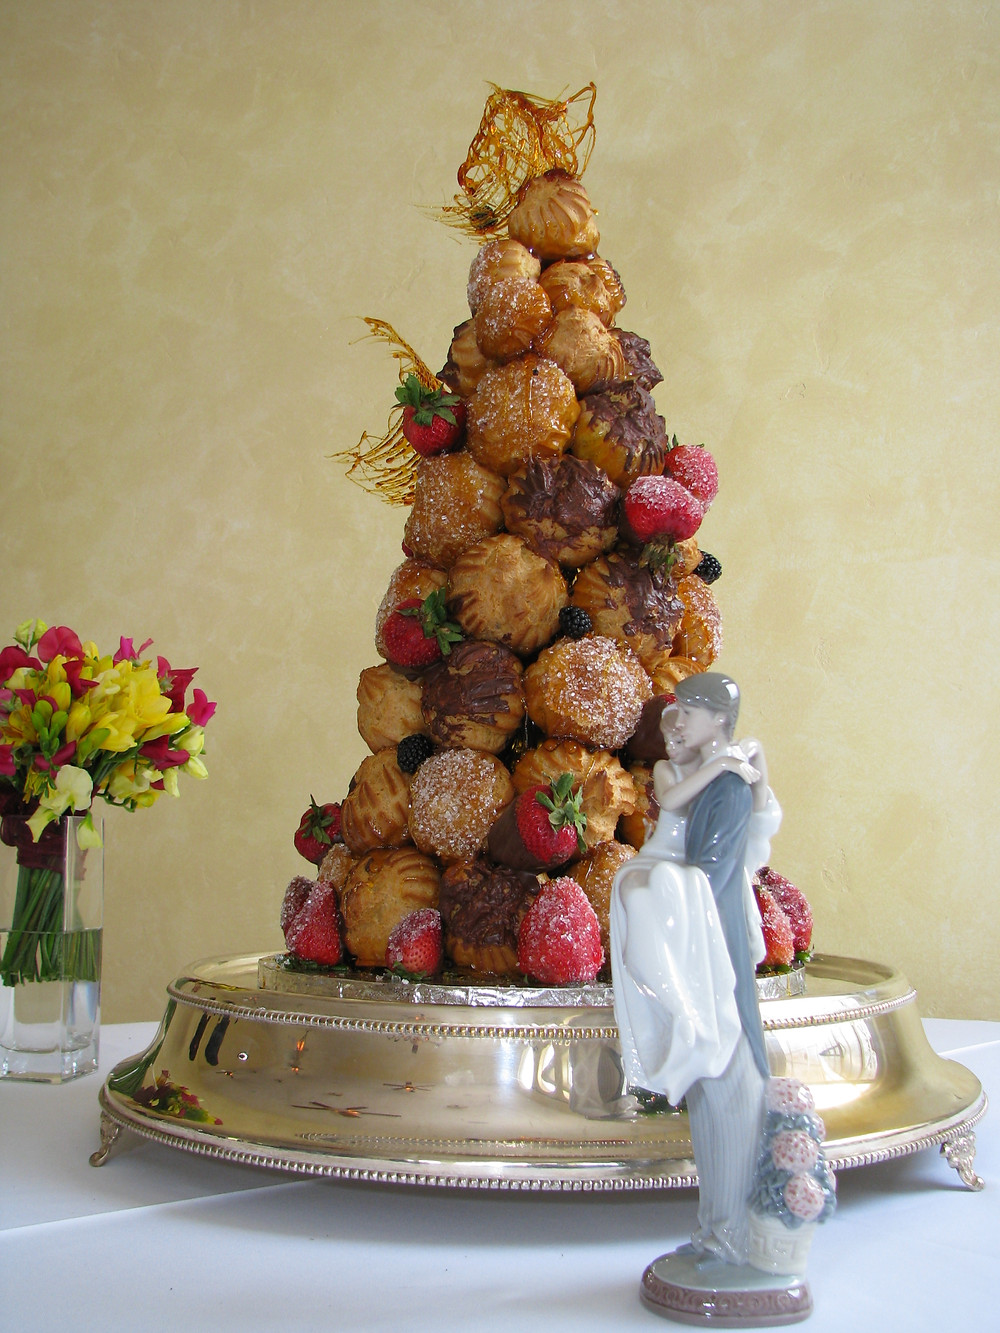 croquembouche, traditional french wedding cake